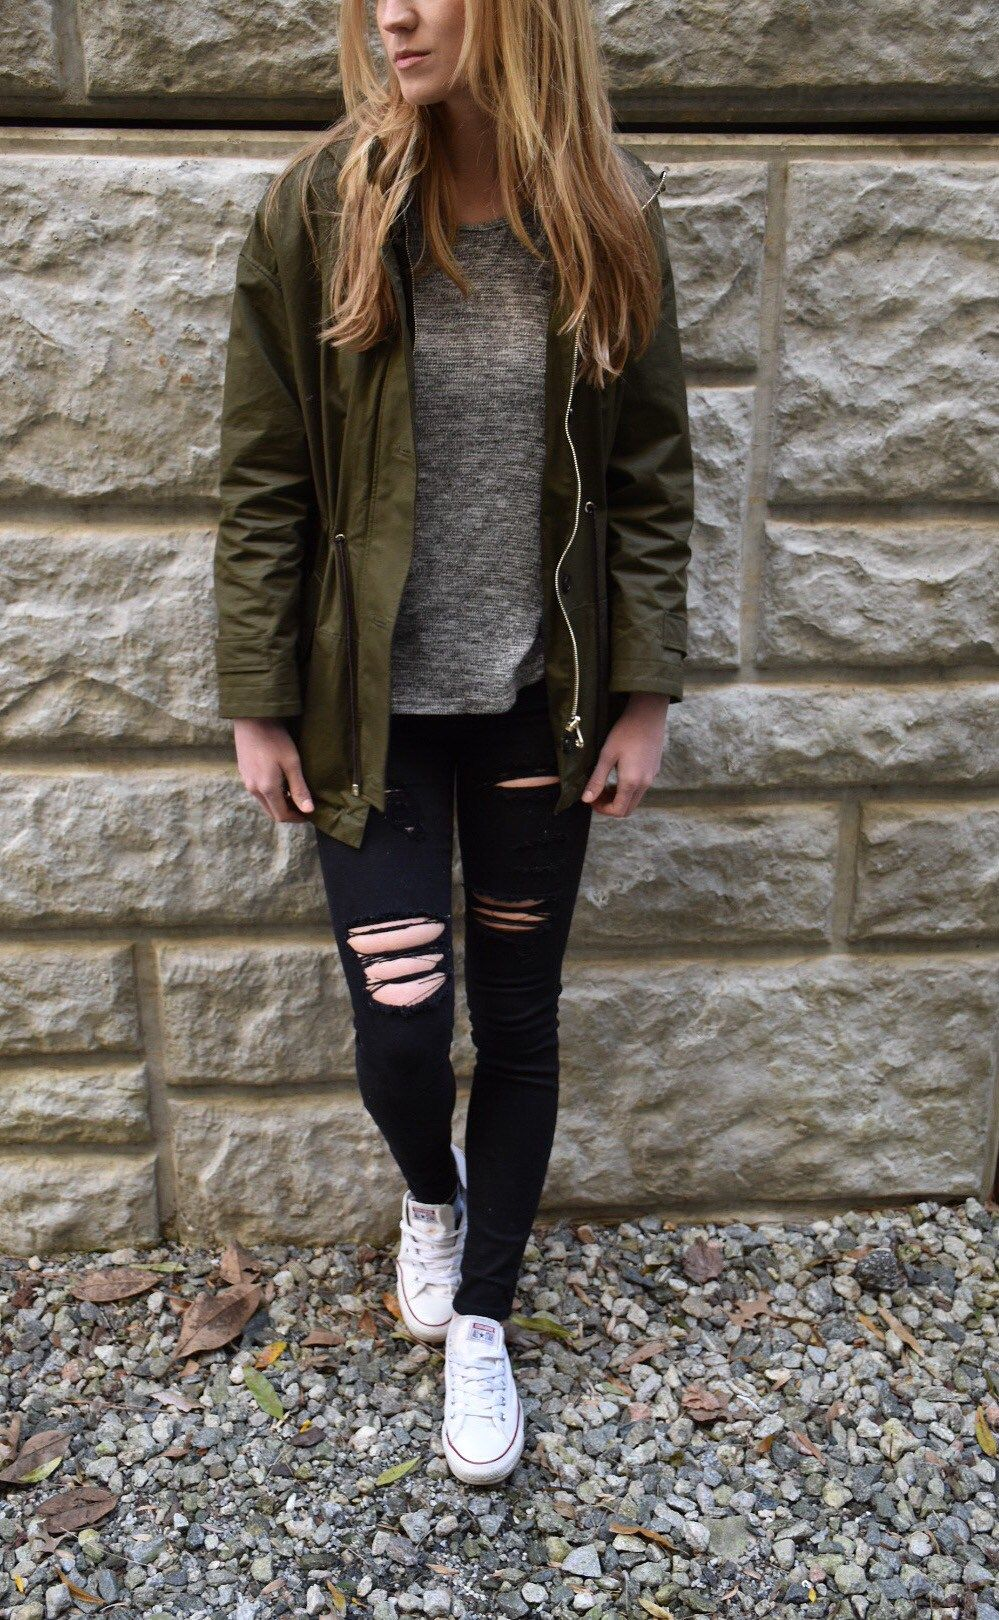 200+ Cute Ripped Jeans Outfits For Winter 2017 | Black timbs Black ripped jeans and White vans